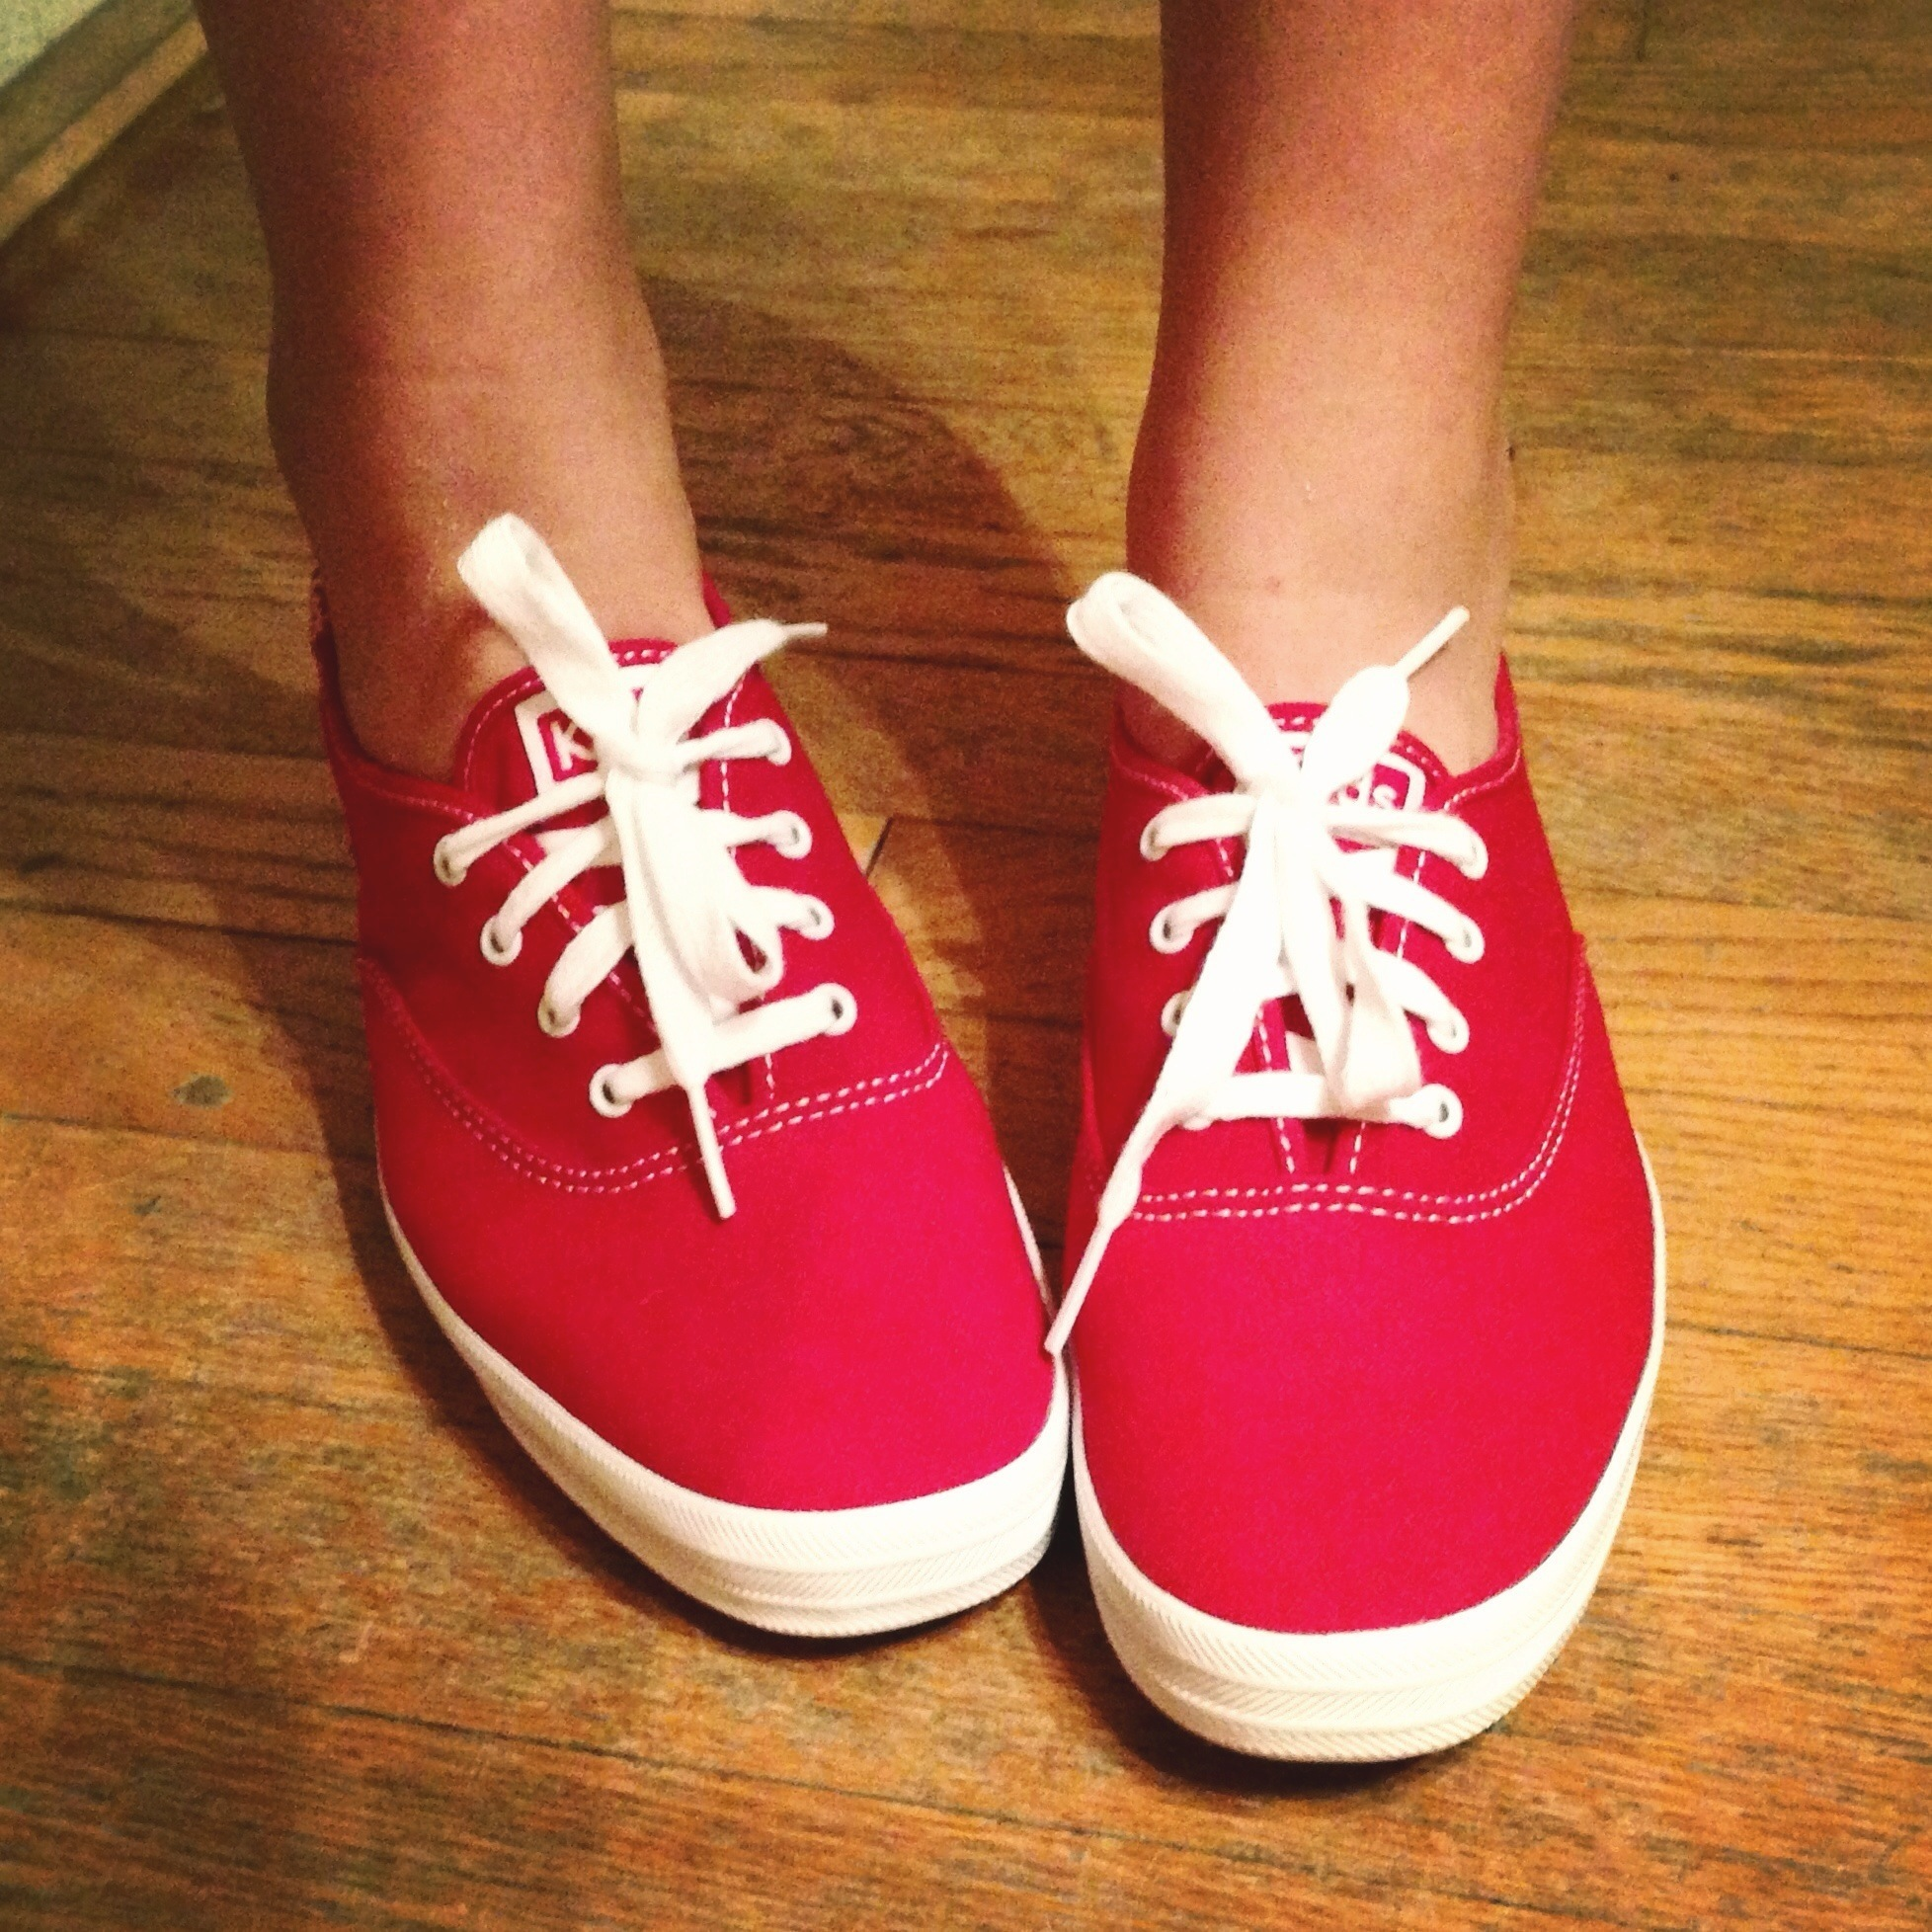 Red keds 2013